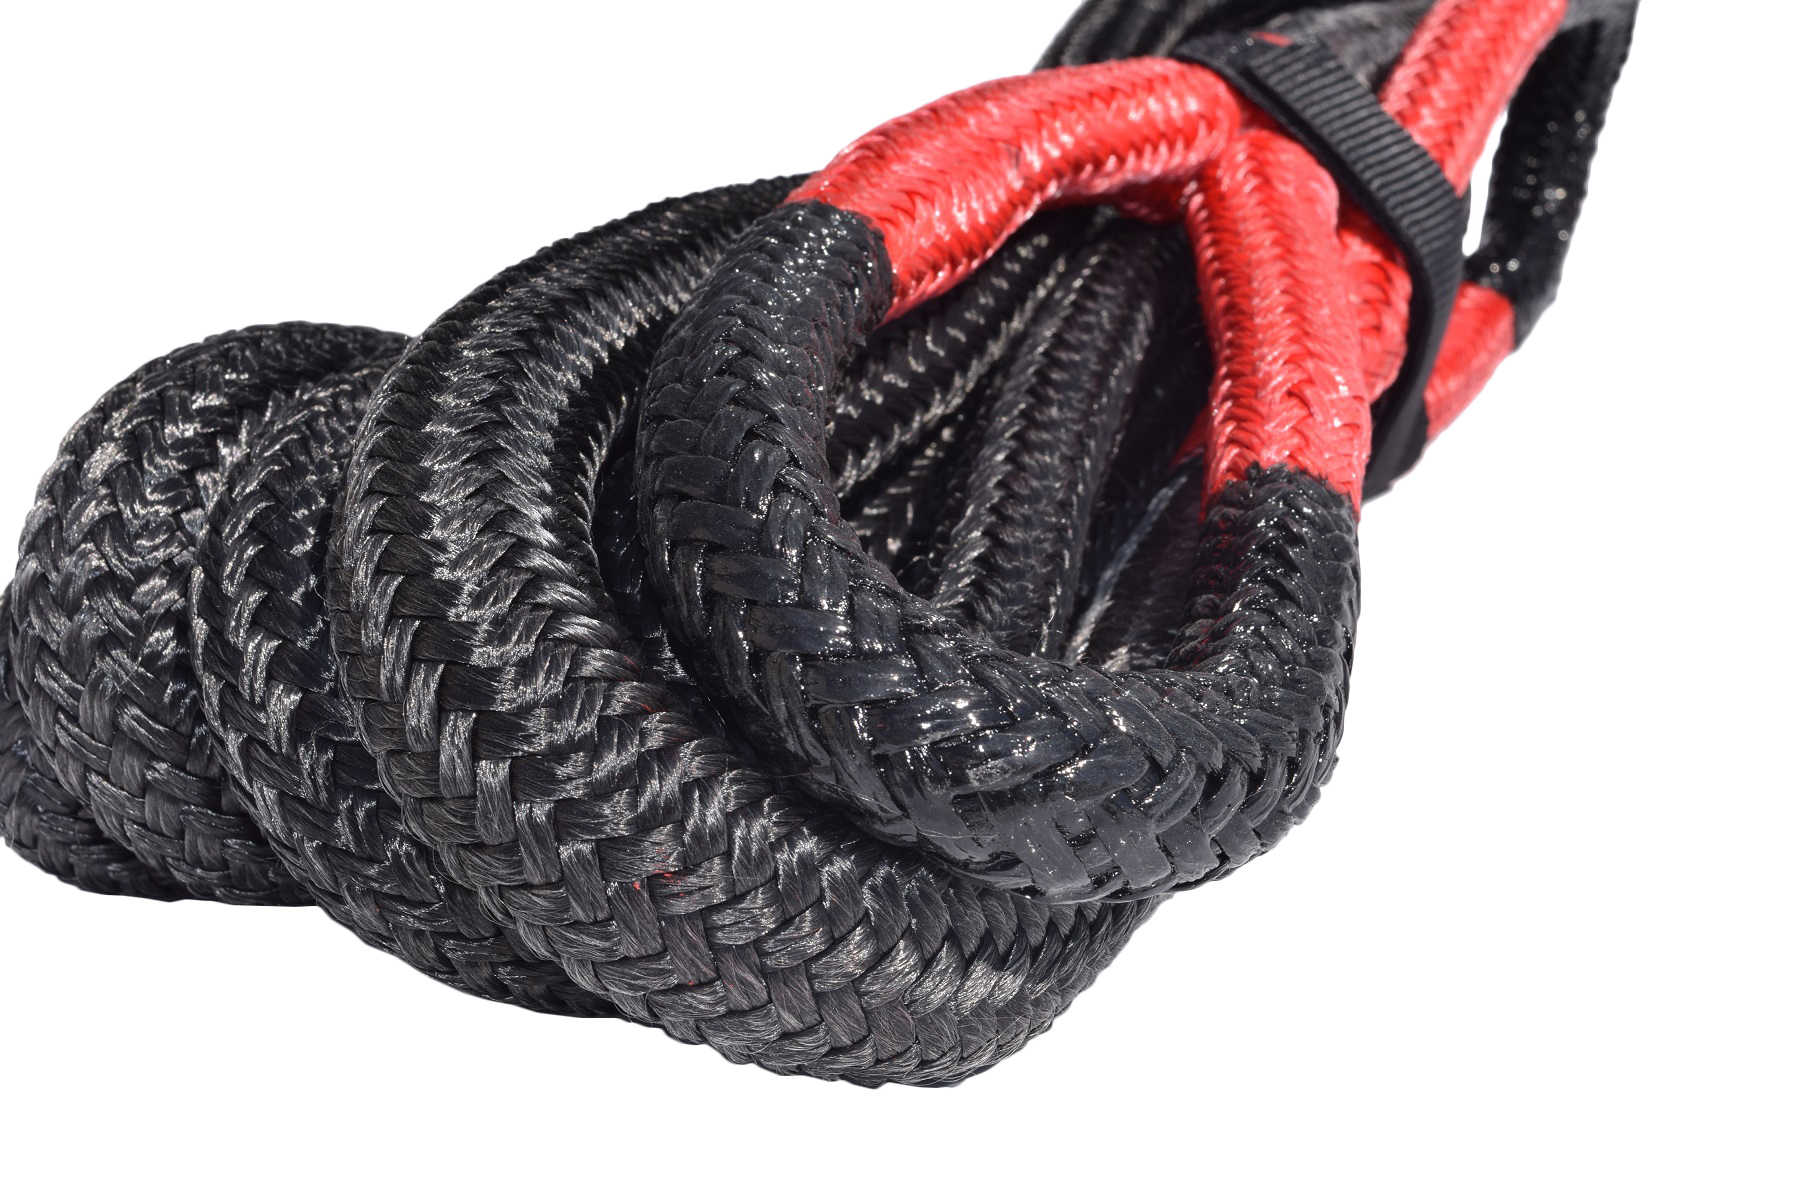 7//8*20ft Double Braided Nylon Kinetic Recovery Rope,22mm*6m Bubba Rope,Tow Rope Car